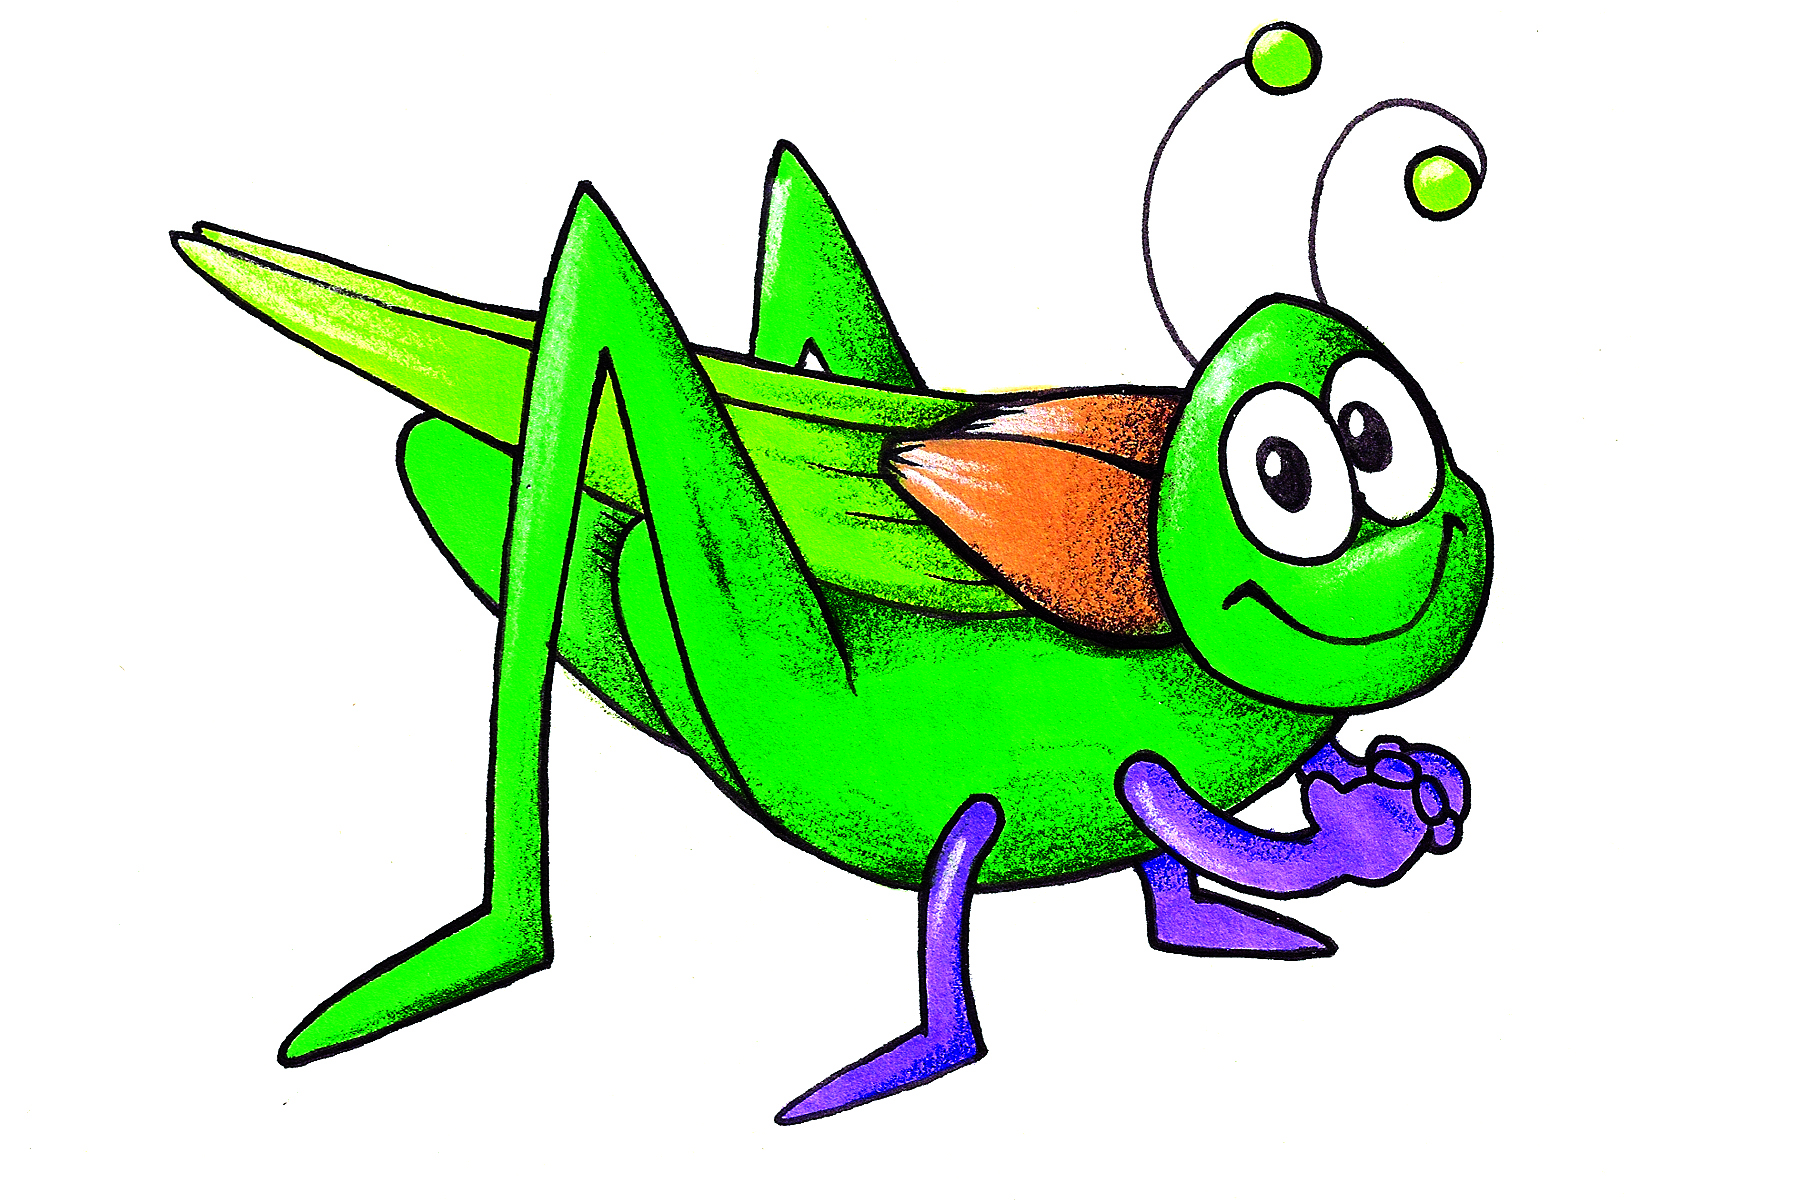 1800x1200 Free Insect Clipart Insect Animations S Image